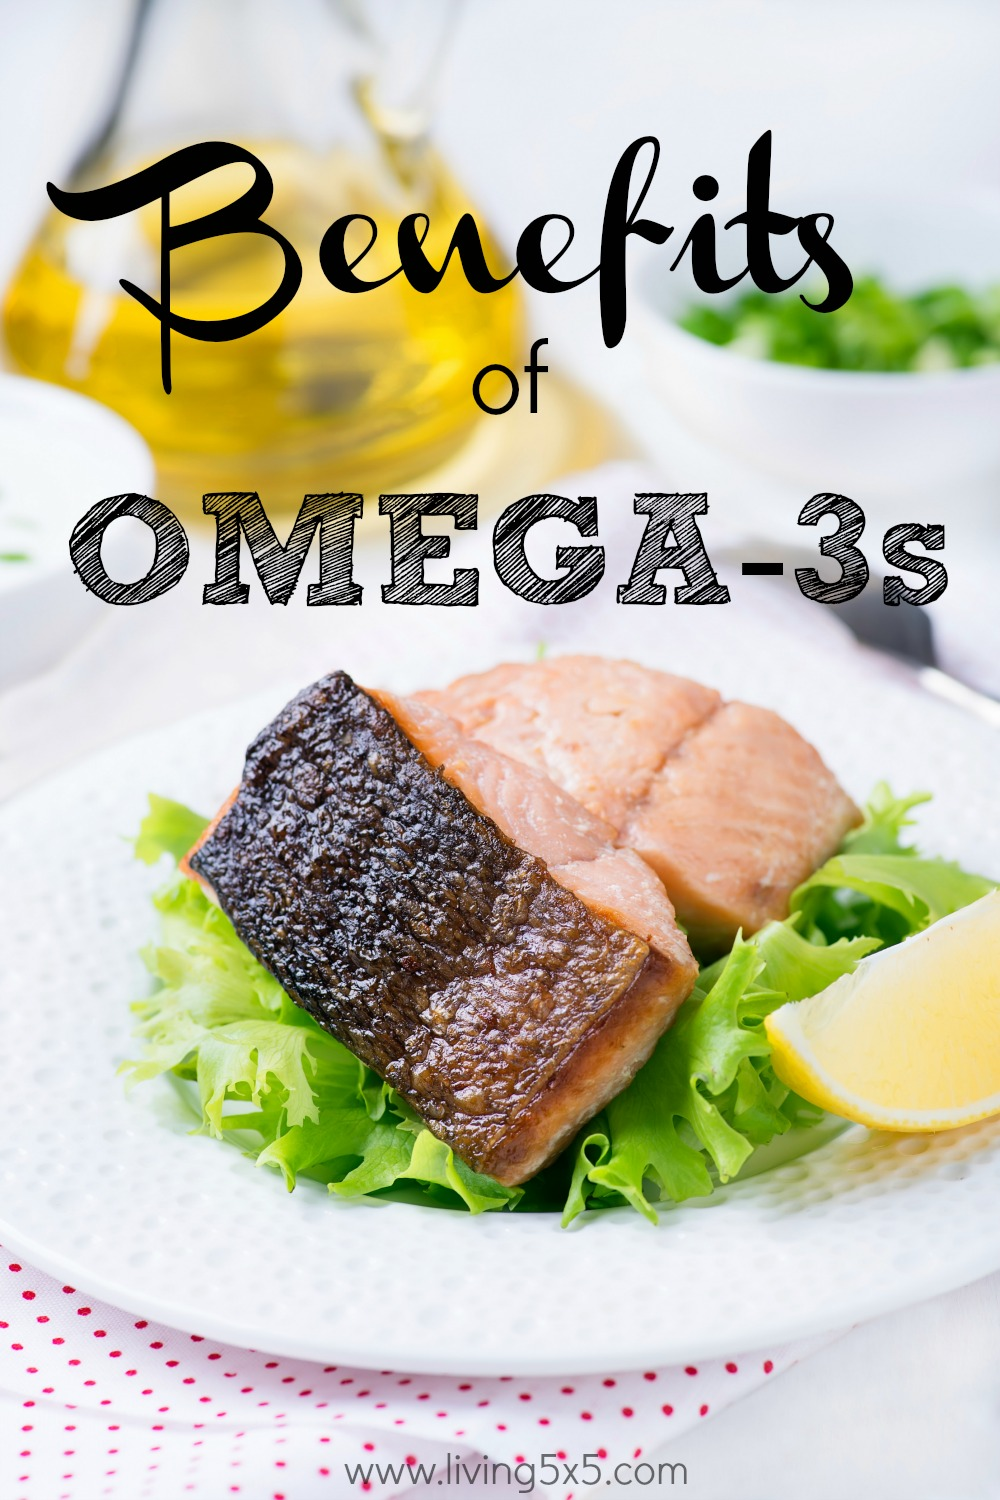 We can boost our brains by ensuring that we get adequate intake of omega-3 fatty acids. See more benefits of what Omega 3s have to offer.